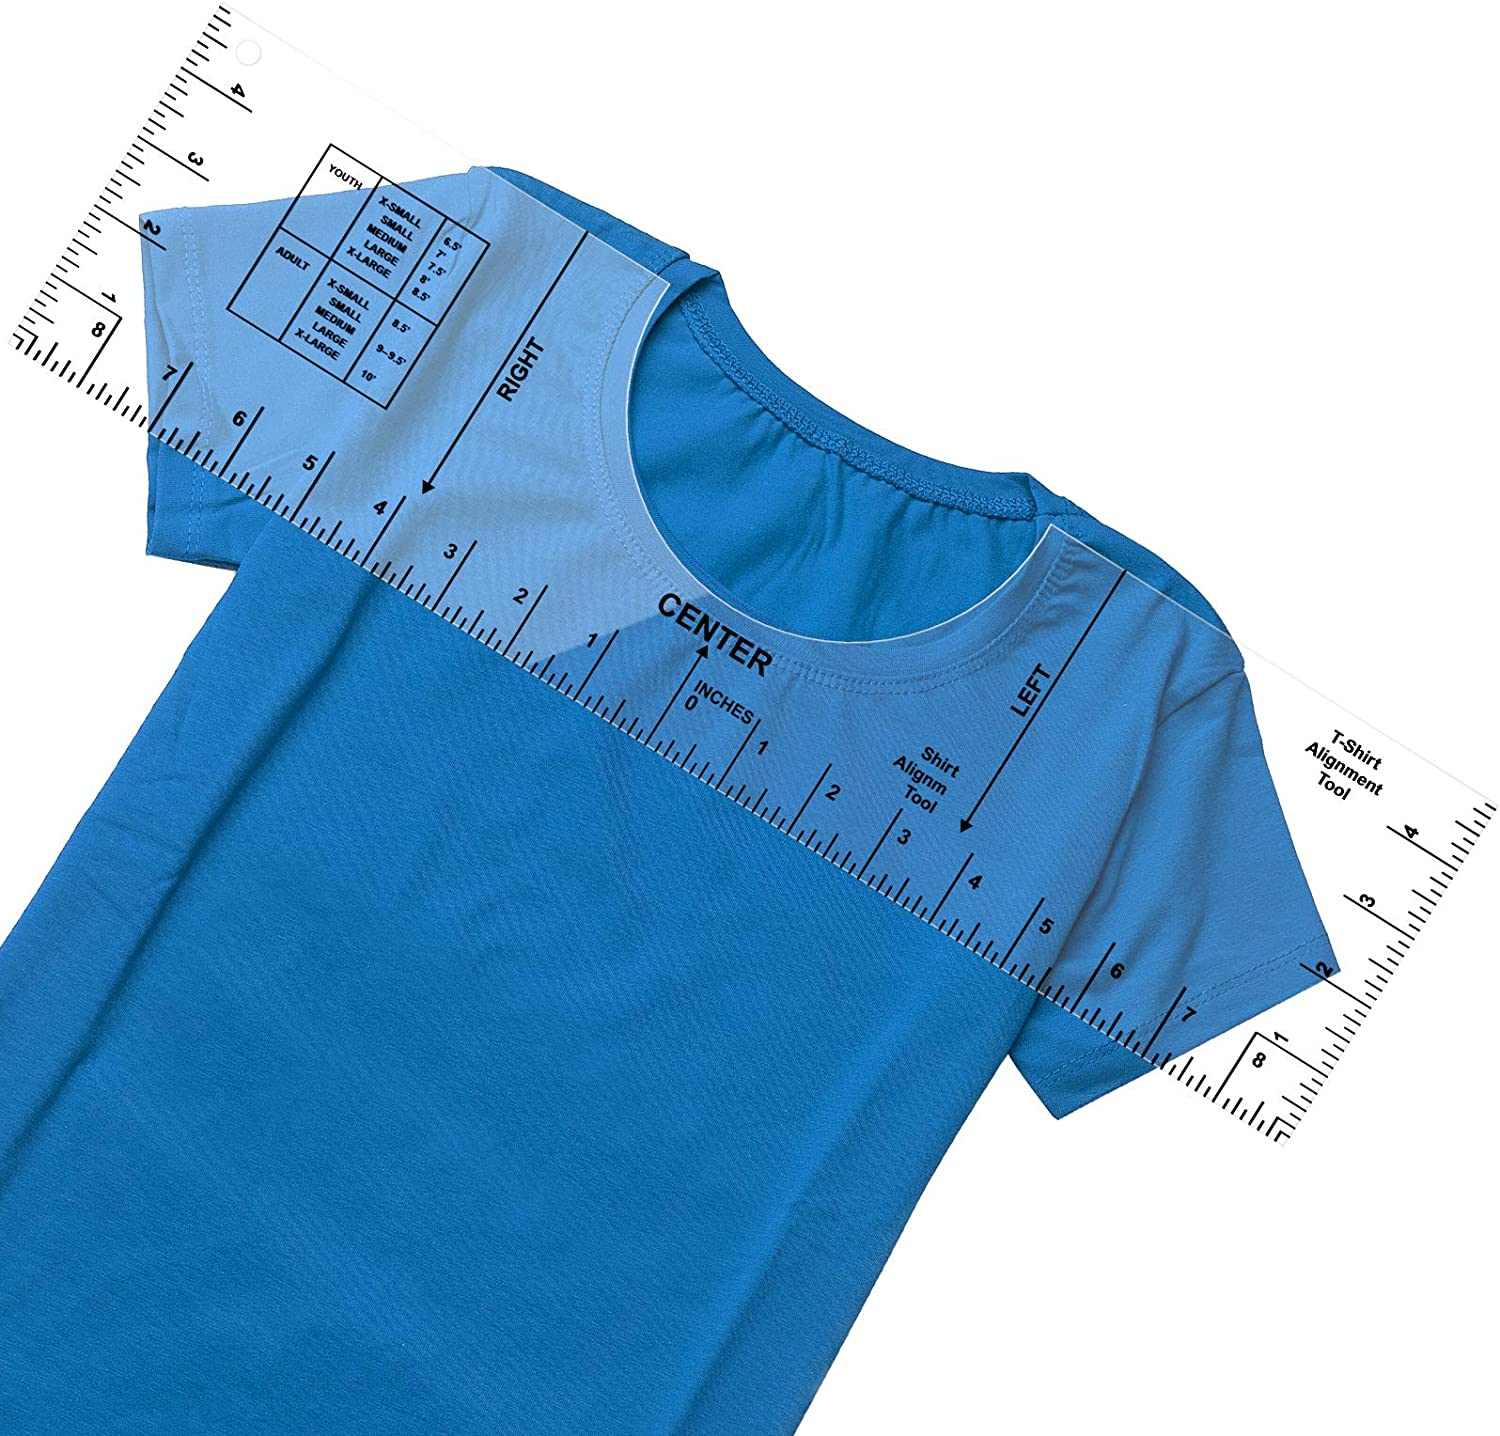 16x5inch HTV Heat Press Alignment T-Shirt Ruler Guide for Placement,T Shirt Alignment Tool,T Shirt Rulers to Center,Sublimation Designs on T-Shirt-Centering Tool